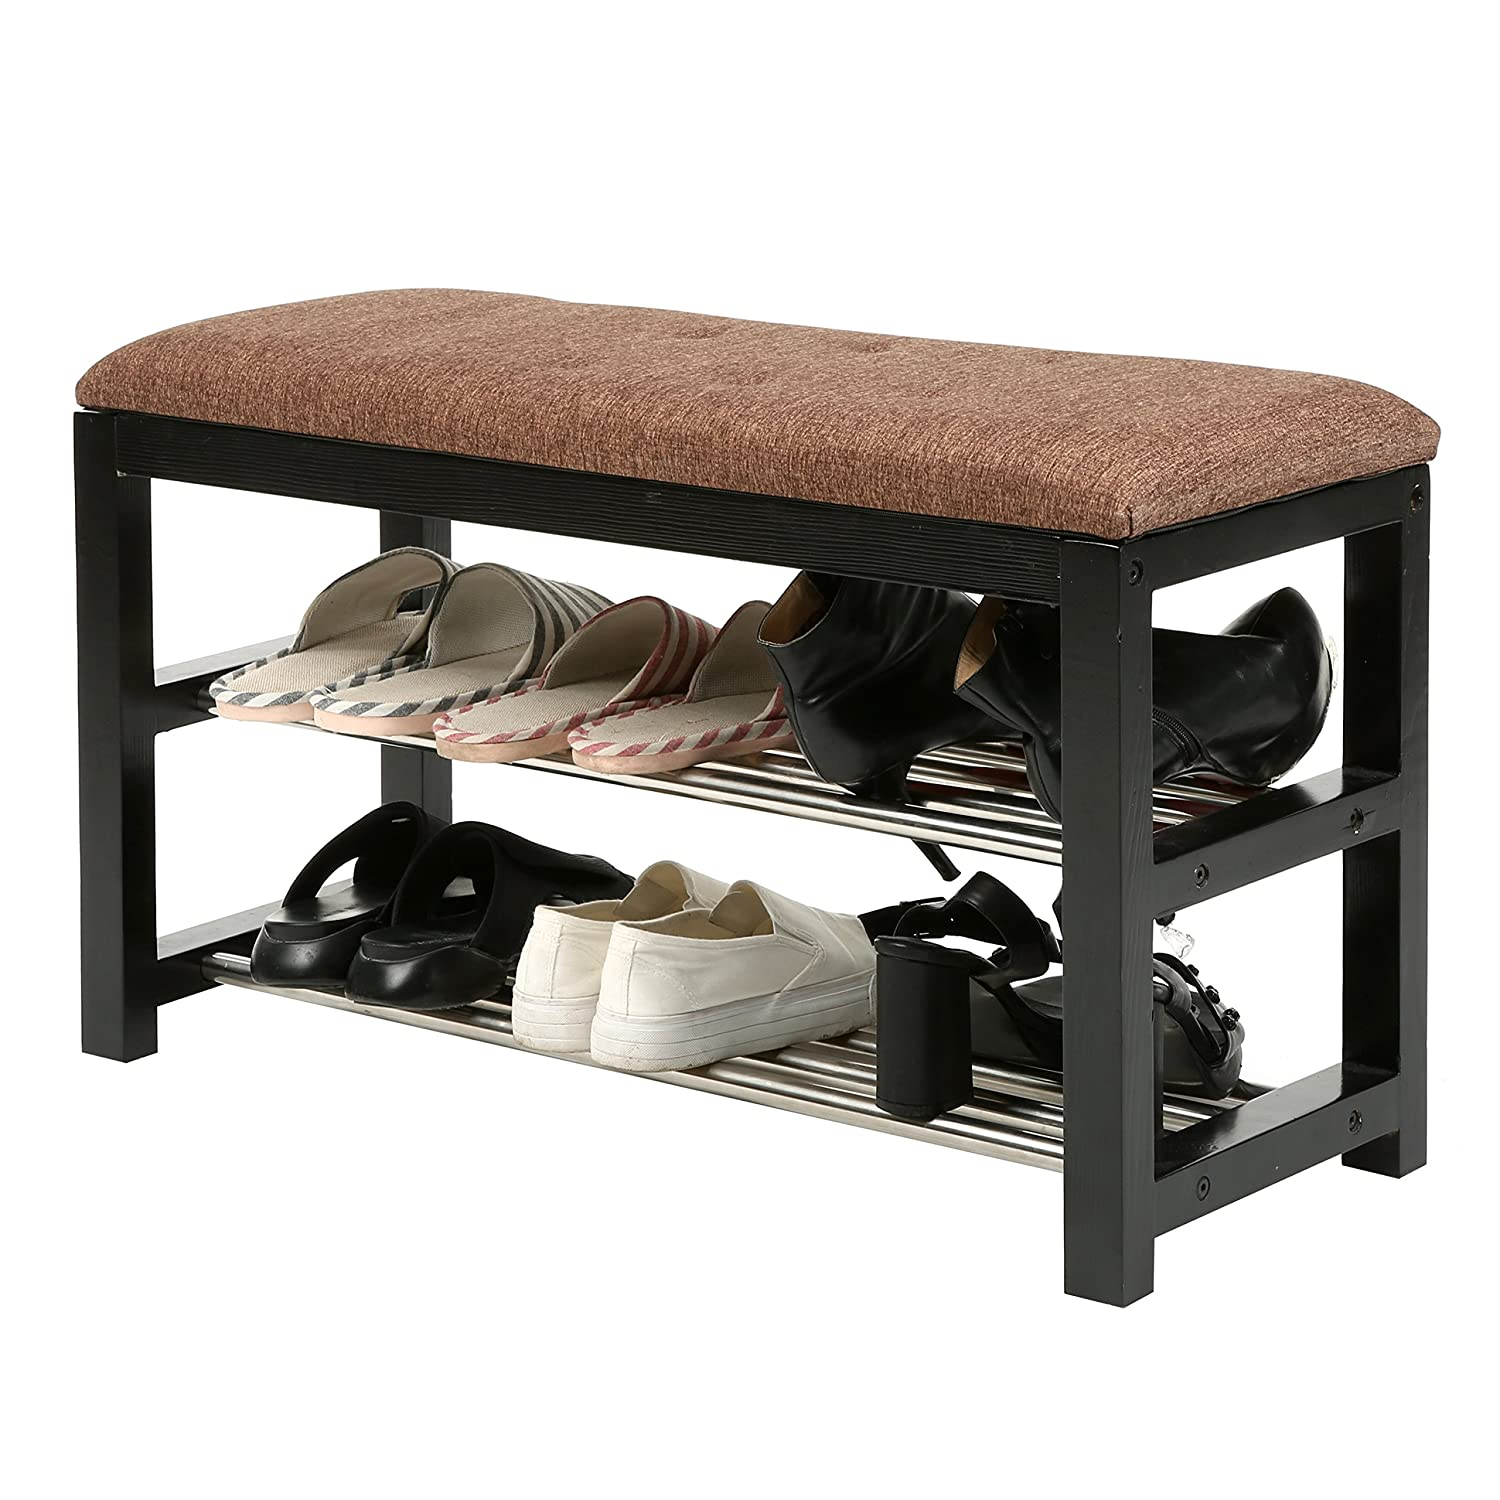 2-Tier Metal Shelf Shoe Rack Bench Storage Organizer with Wooden Frame and Cushion, Entryway Bench MyGift